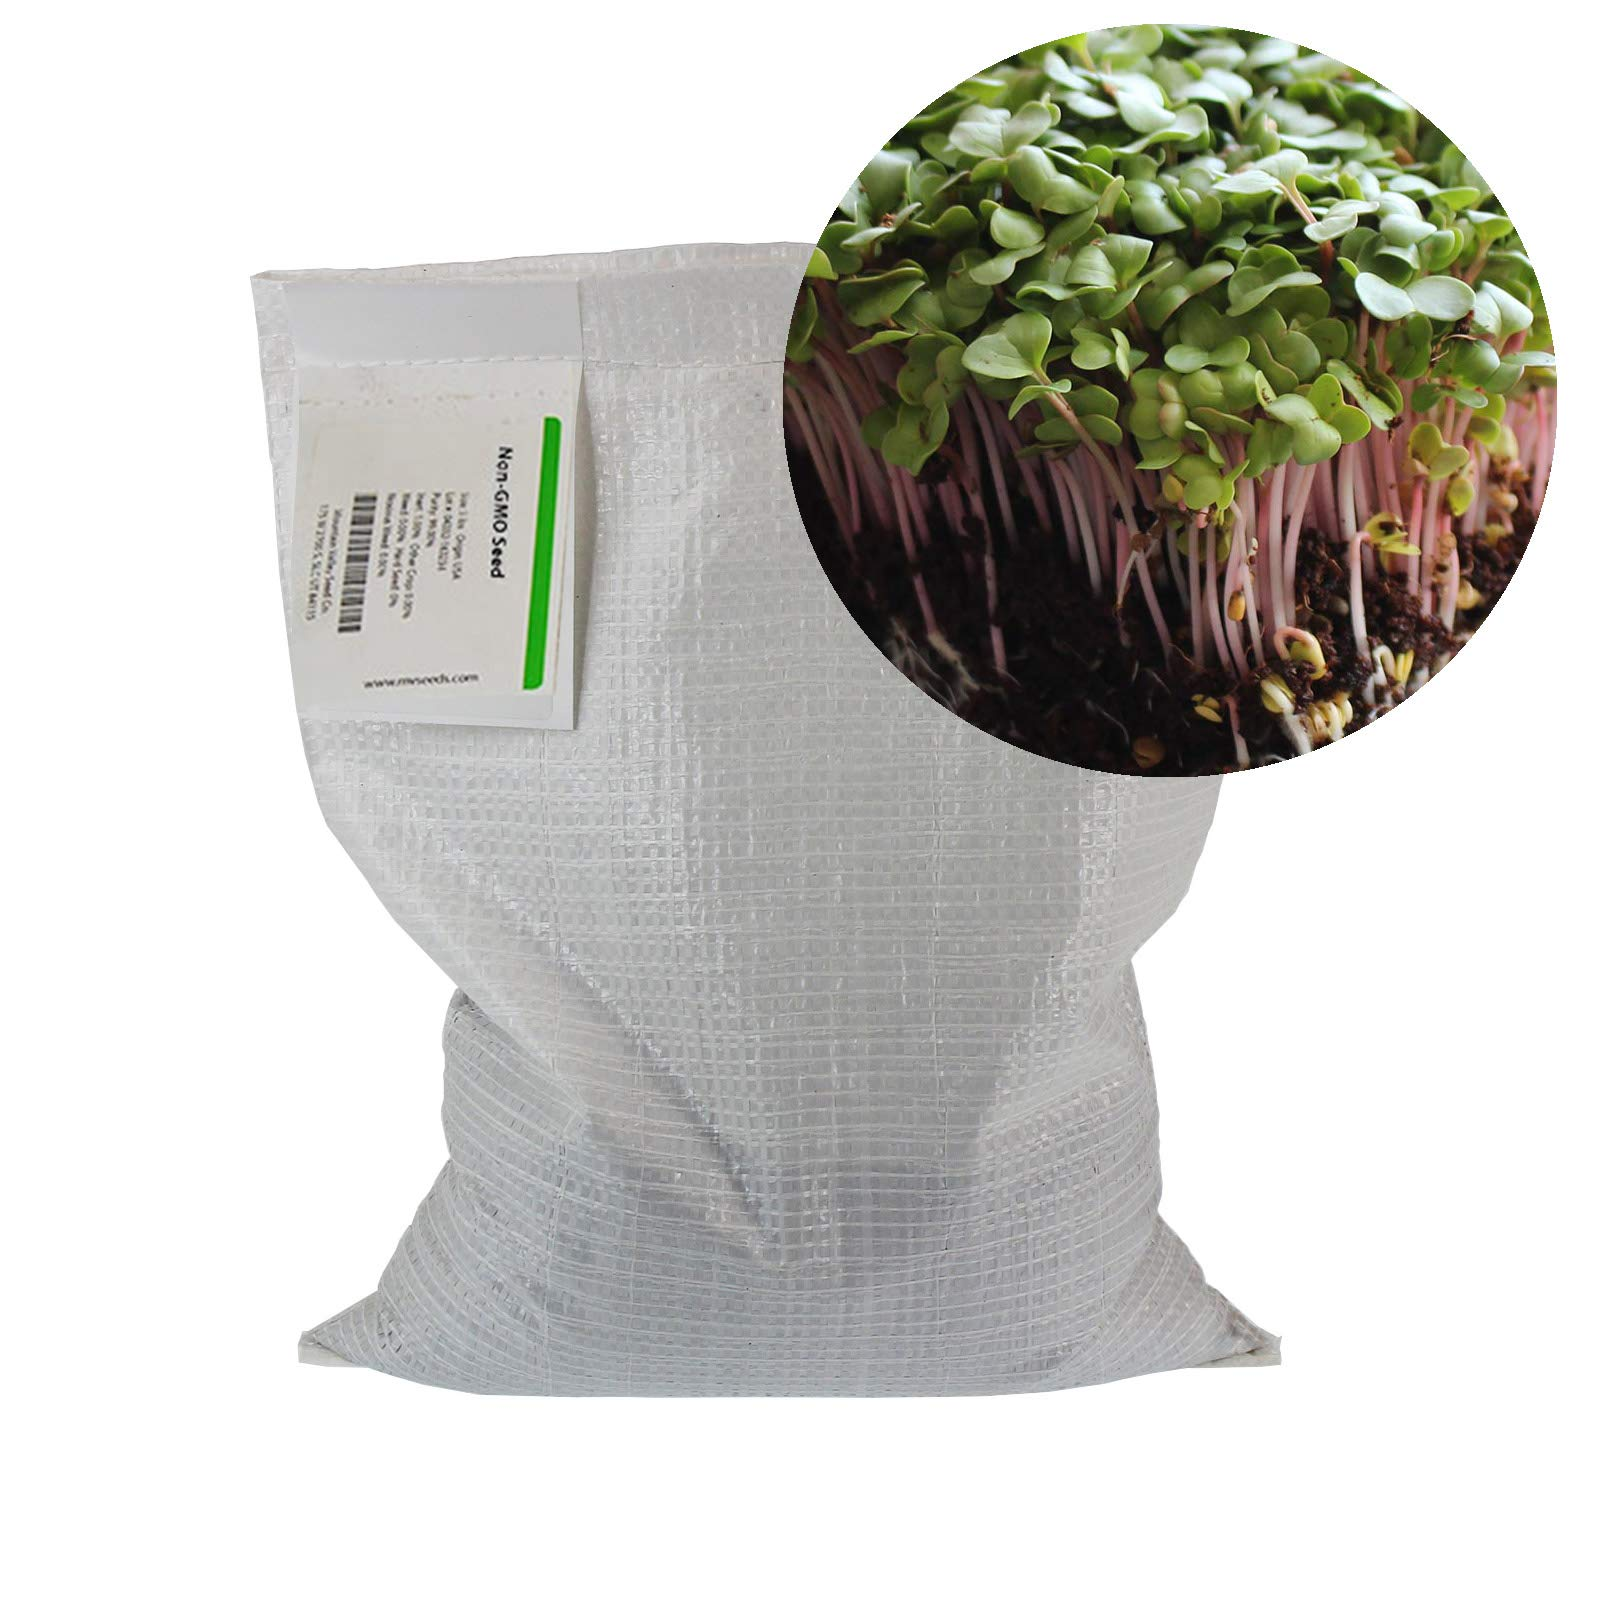 Radish Sprouting Seed - Red Arrow Variety - 5 Lb Bulk Seed - Heirloom Radish Sprouts - Non-GMO Sprouting and Micro Radishes by Mountain Valley Seed Company